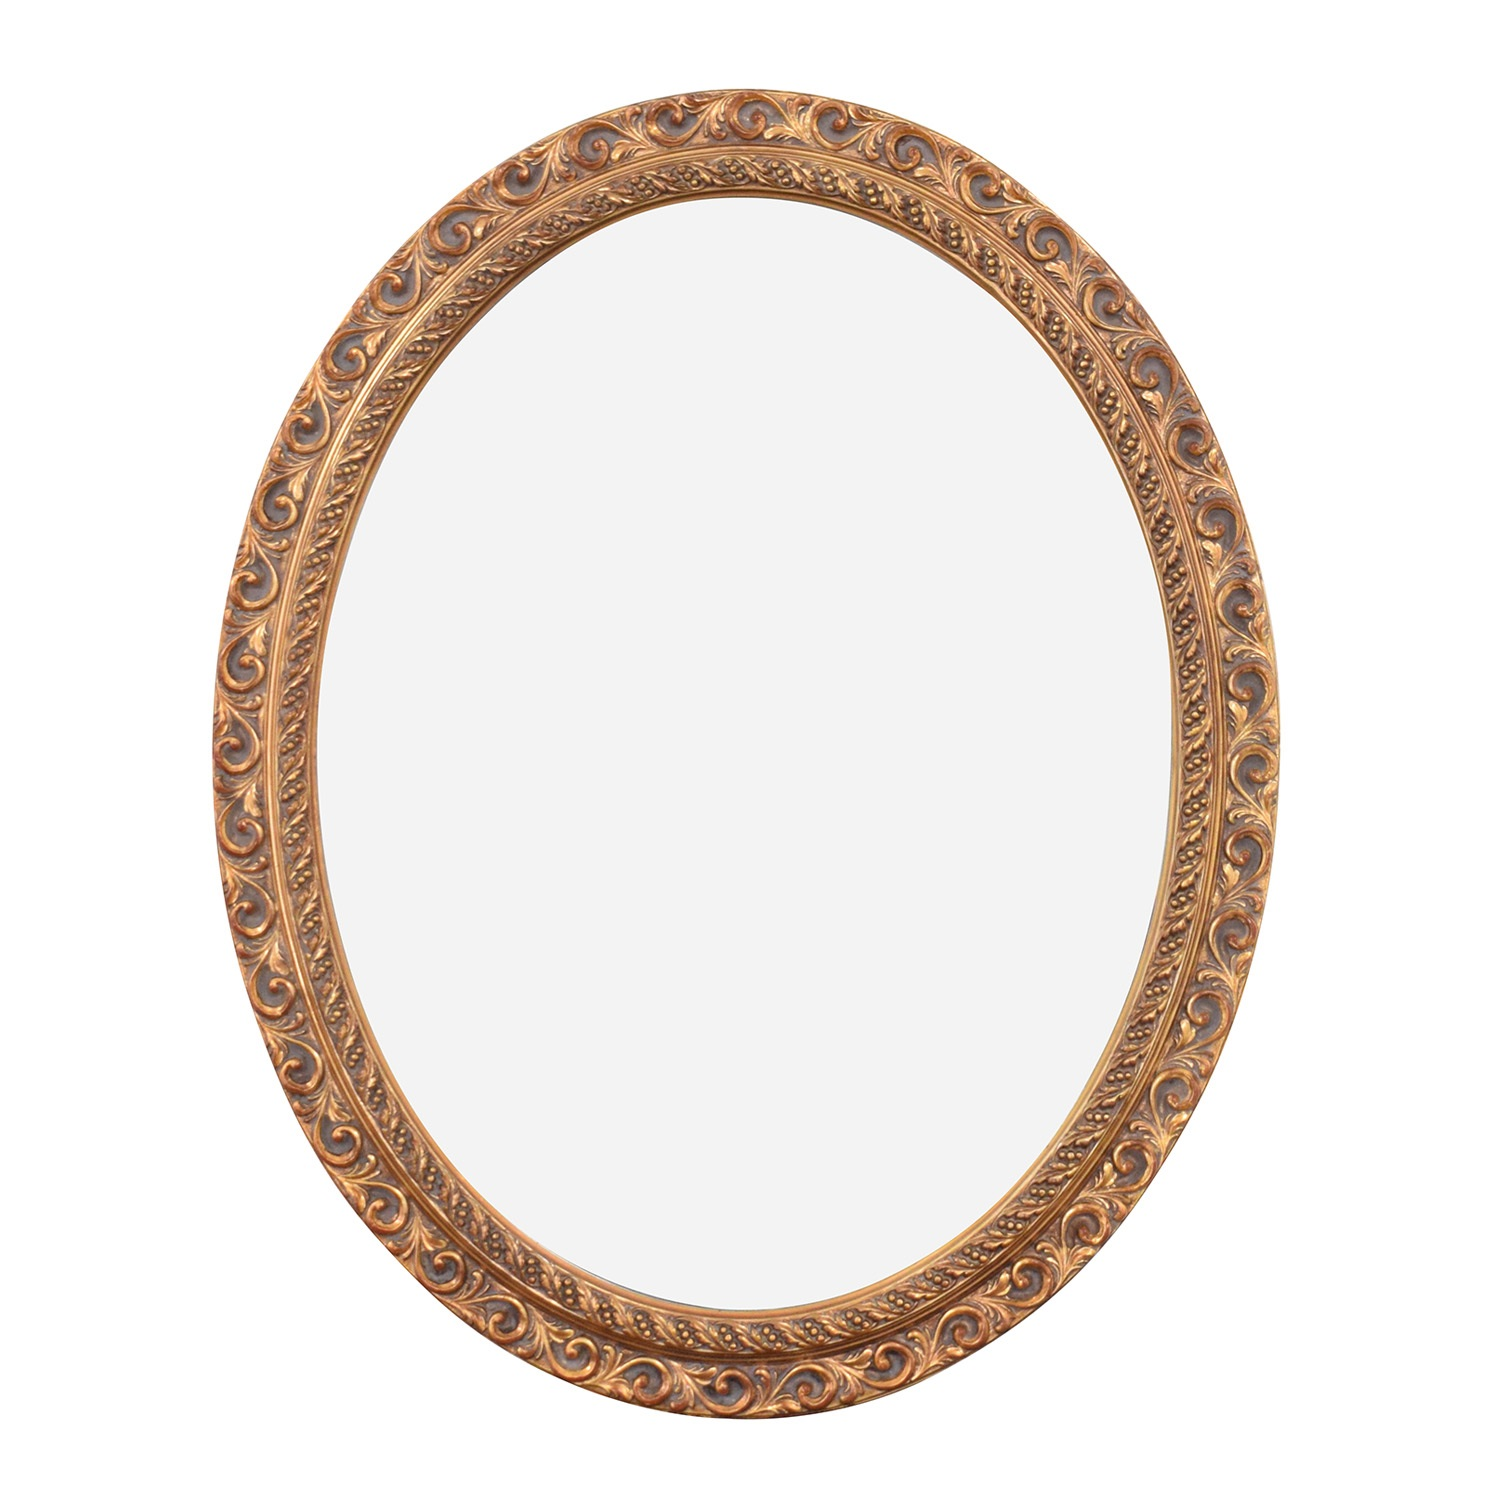 Decorative Oval Wall Mirror coupon